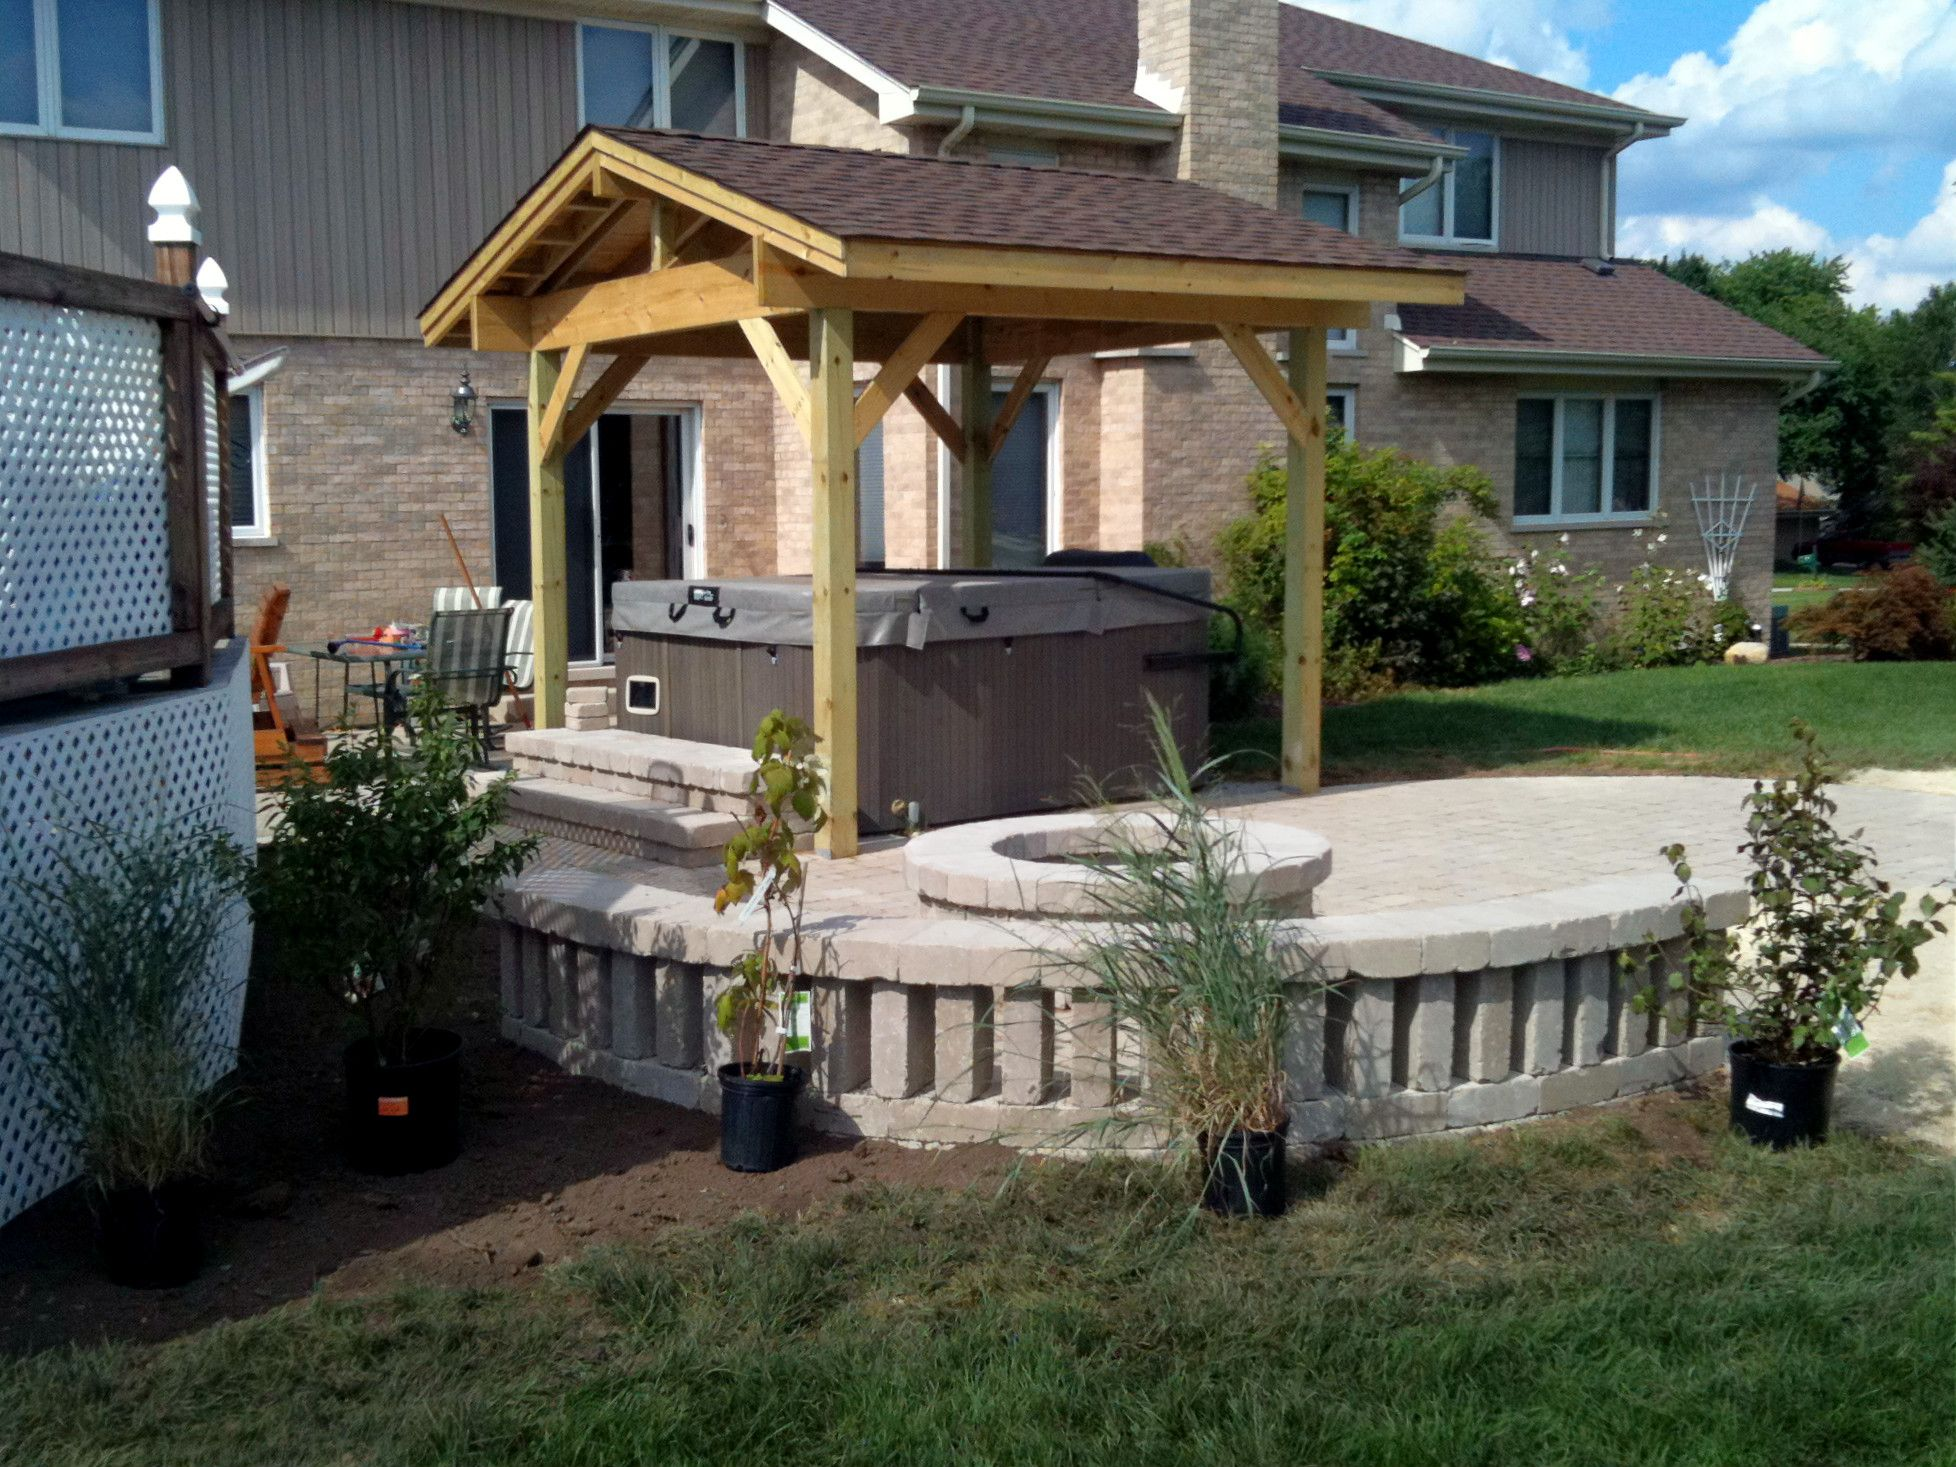 Unilock Patio Design With Fire Pit And Hot Tub By Homer Glen, IL Patio  Builder